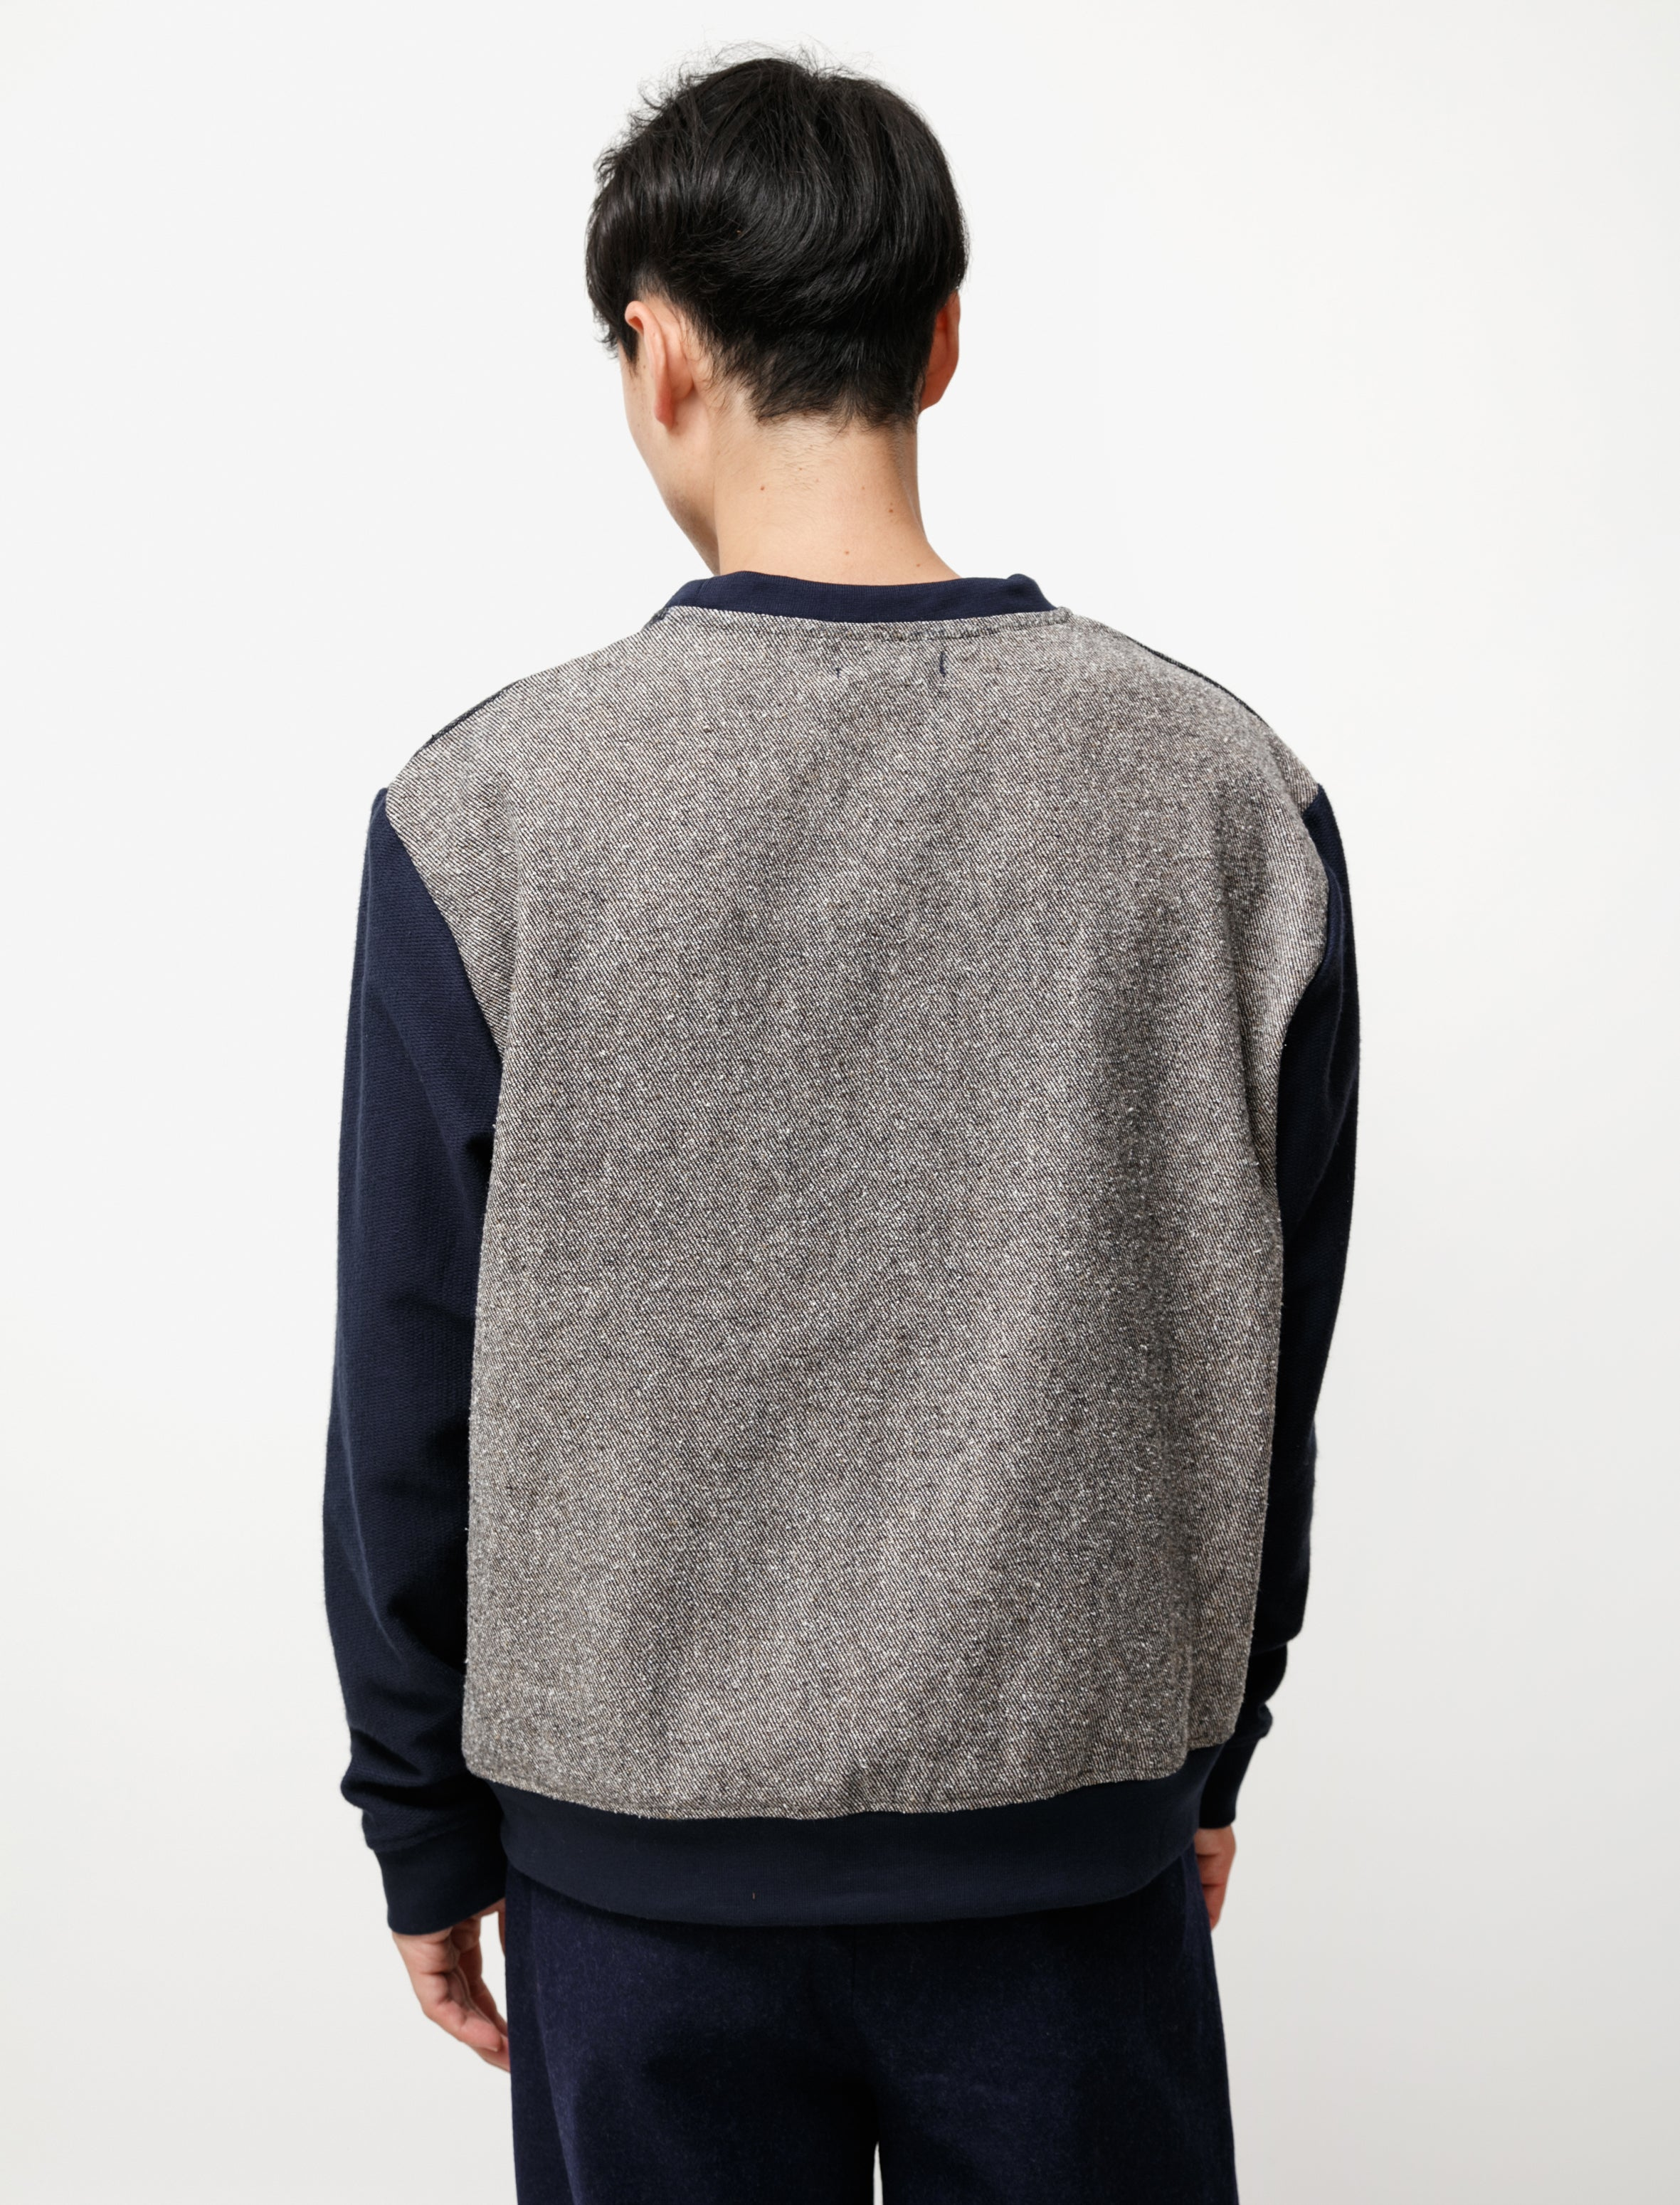 Frank Leder Sweatshirt Cotton Mix